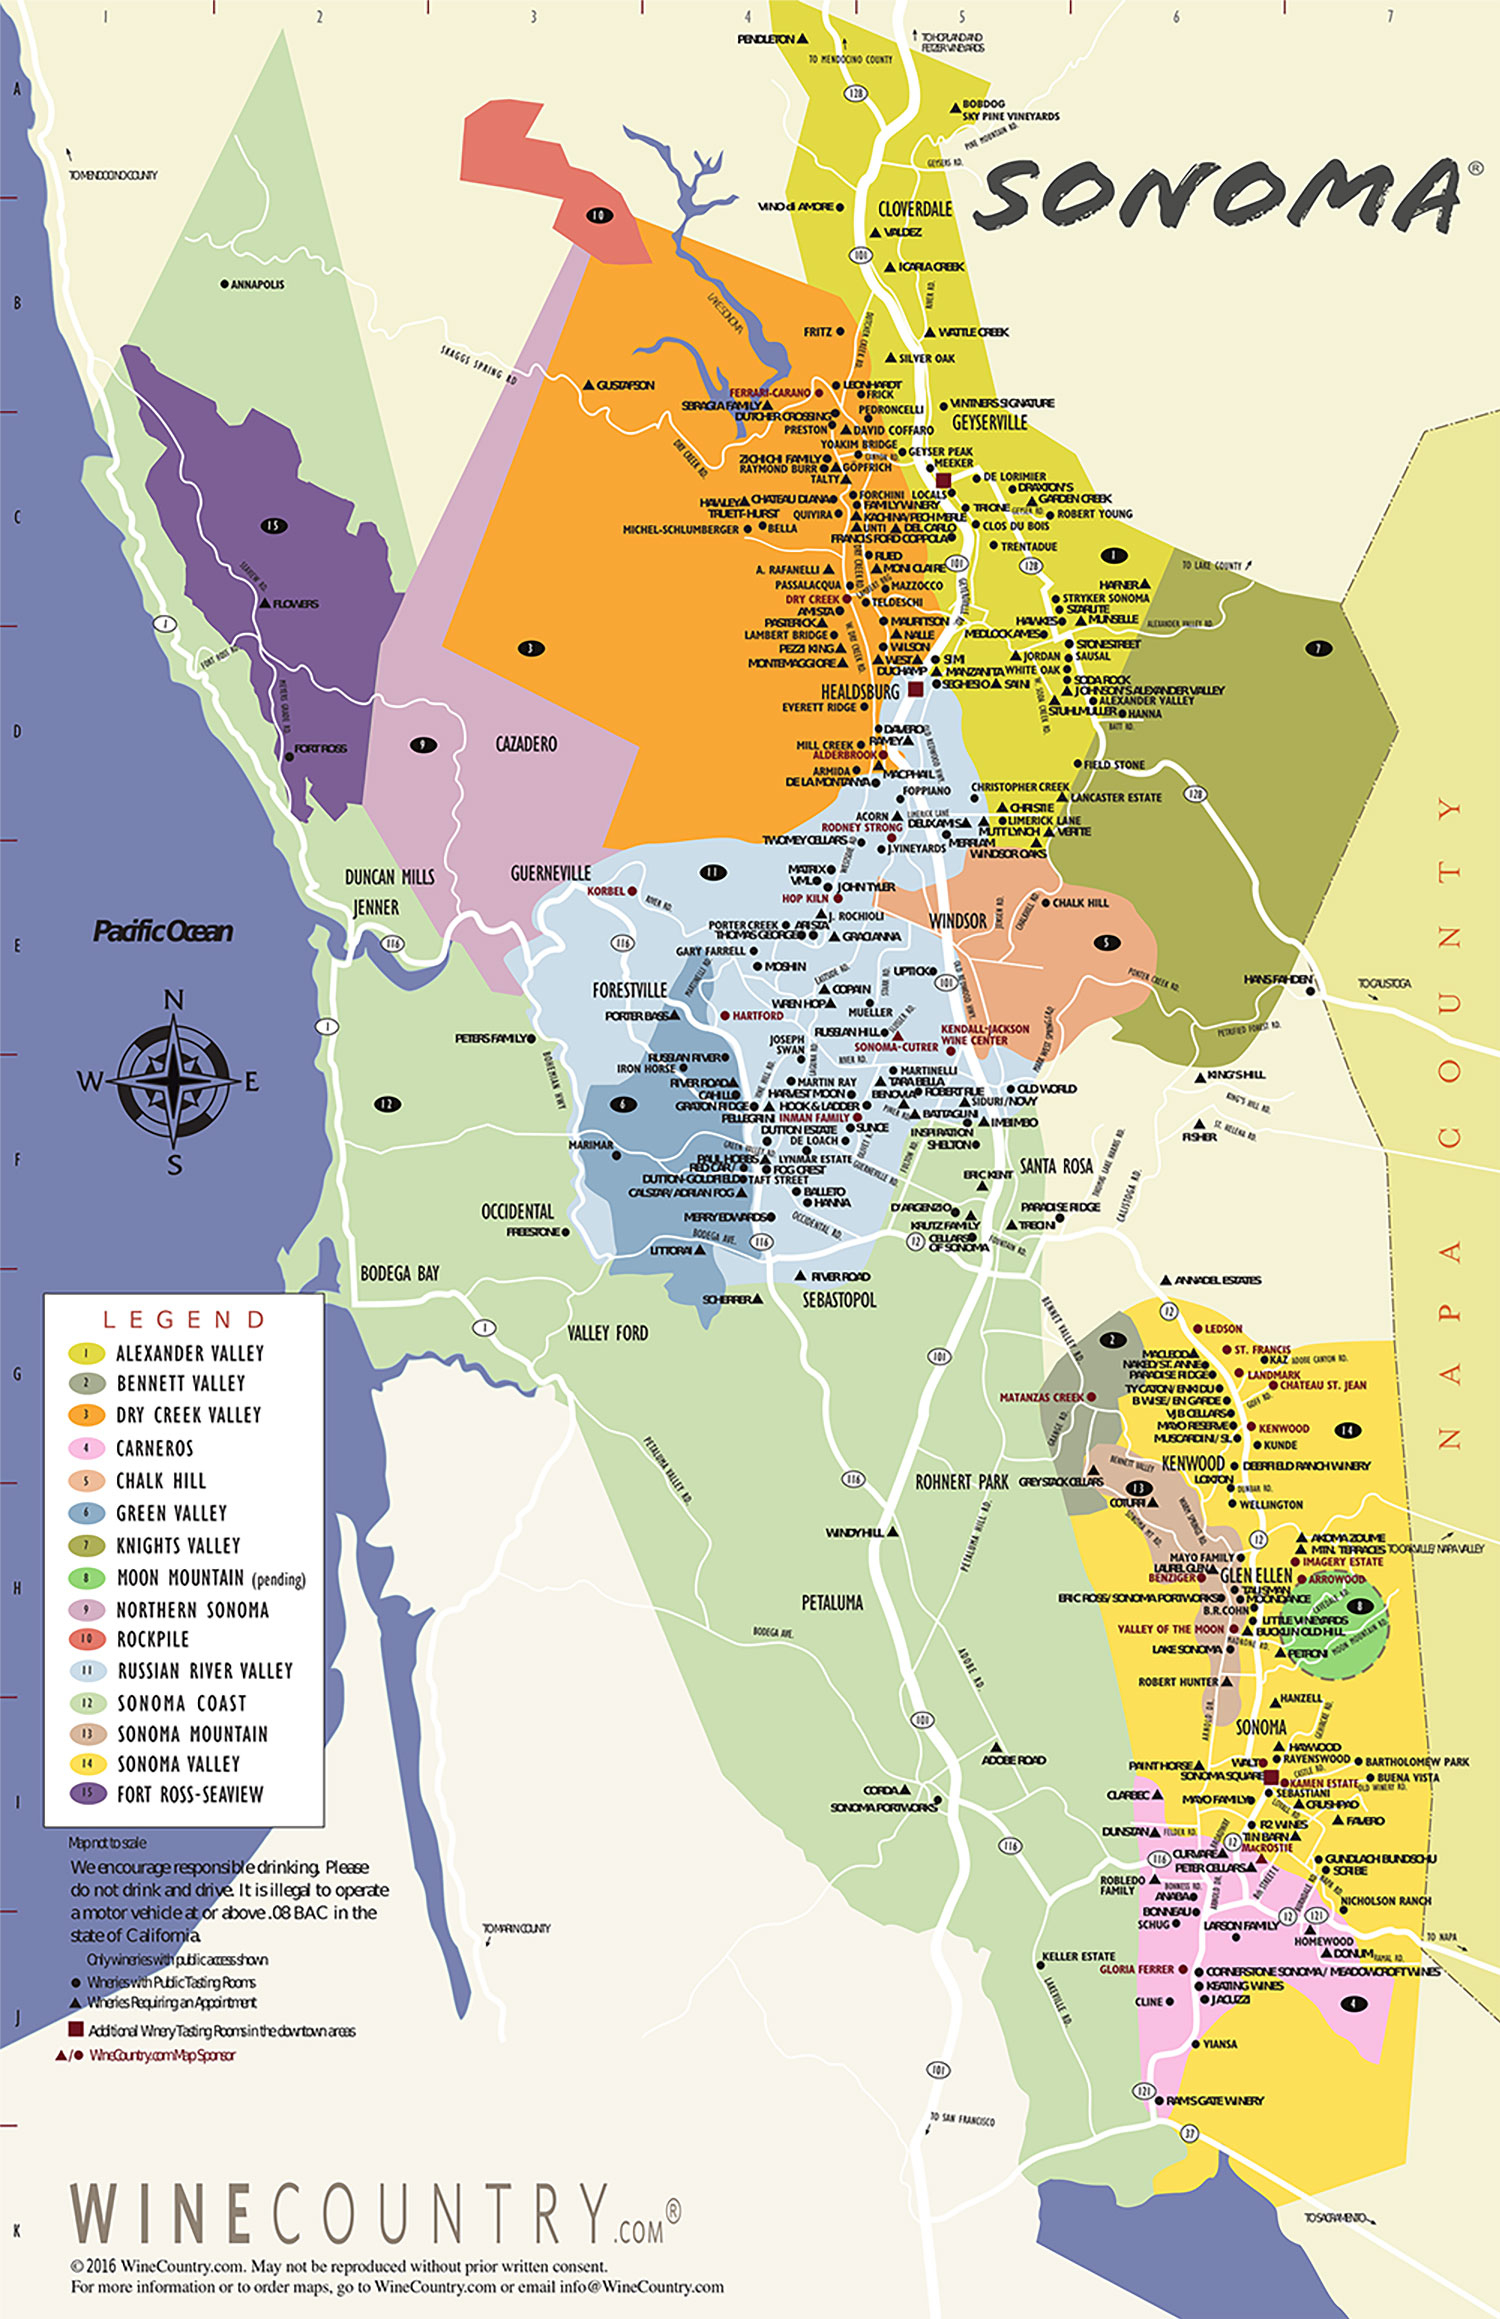 Sonoma County Wine Country Maps - Sonoma - Map Of Wineries In Sonoma County California